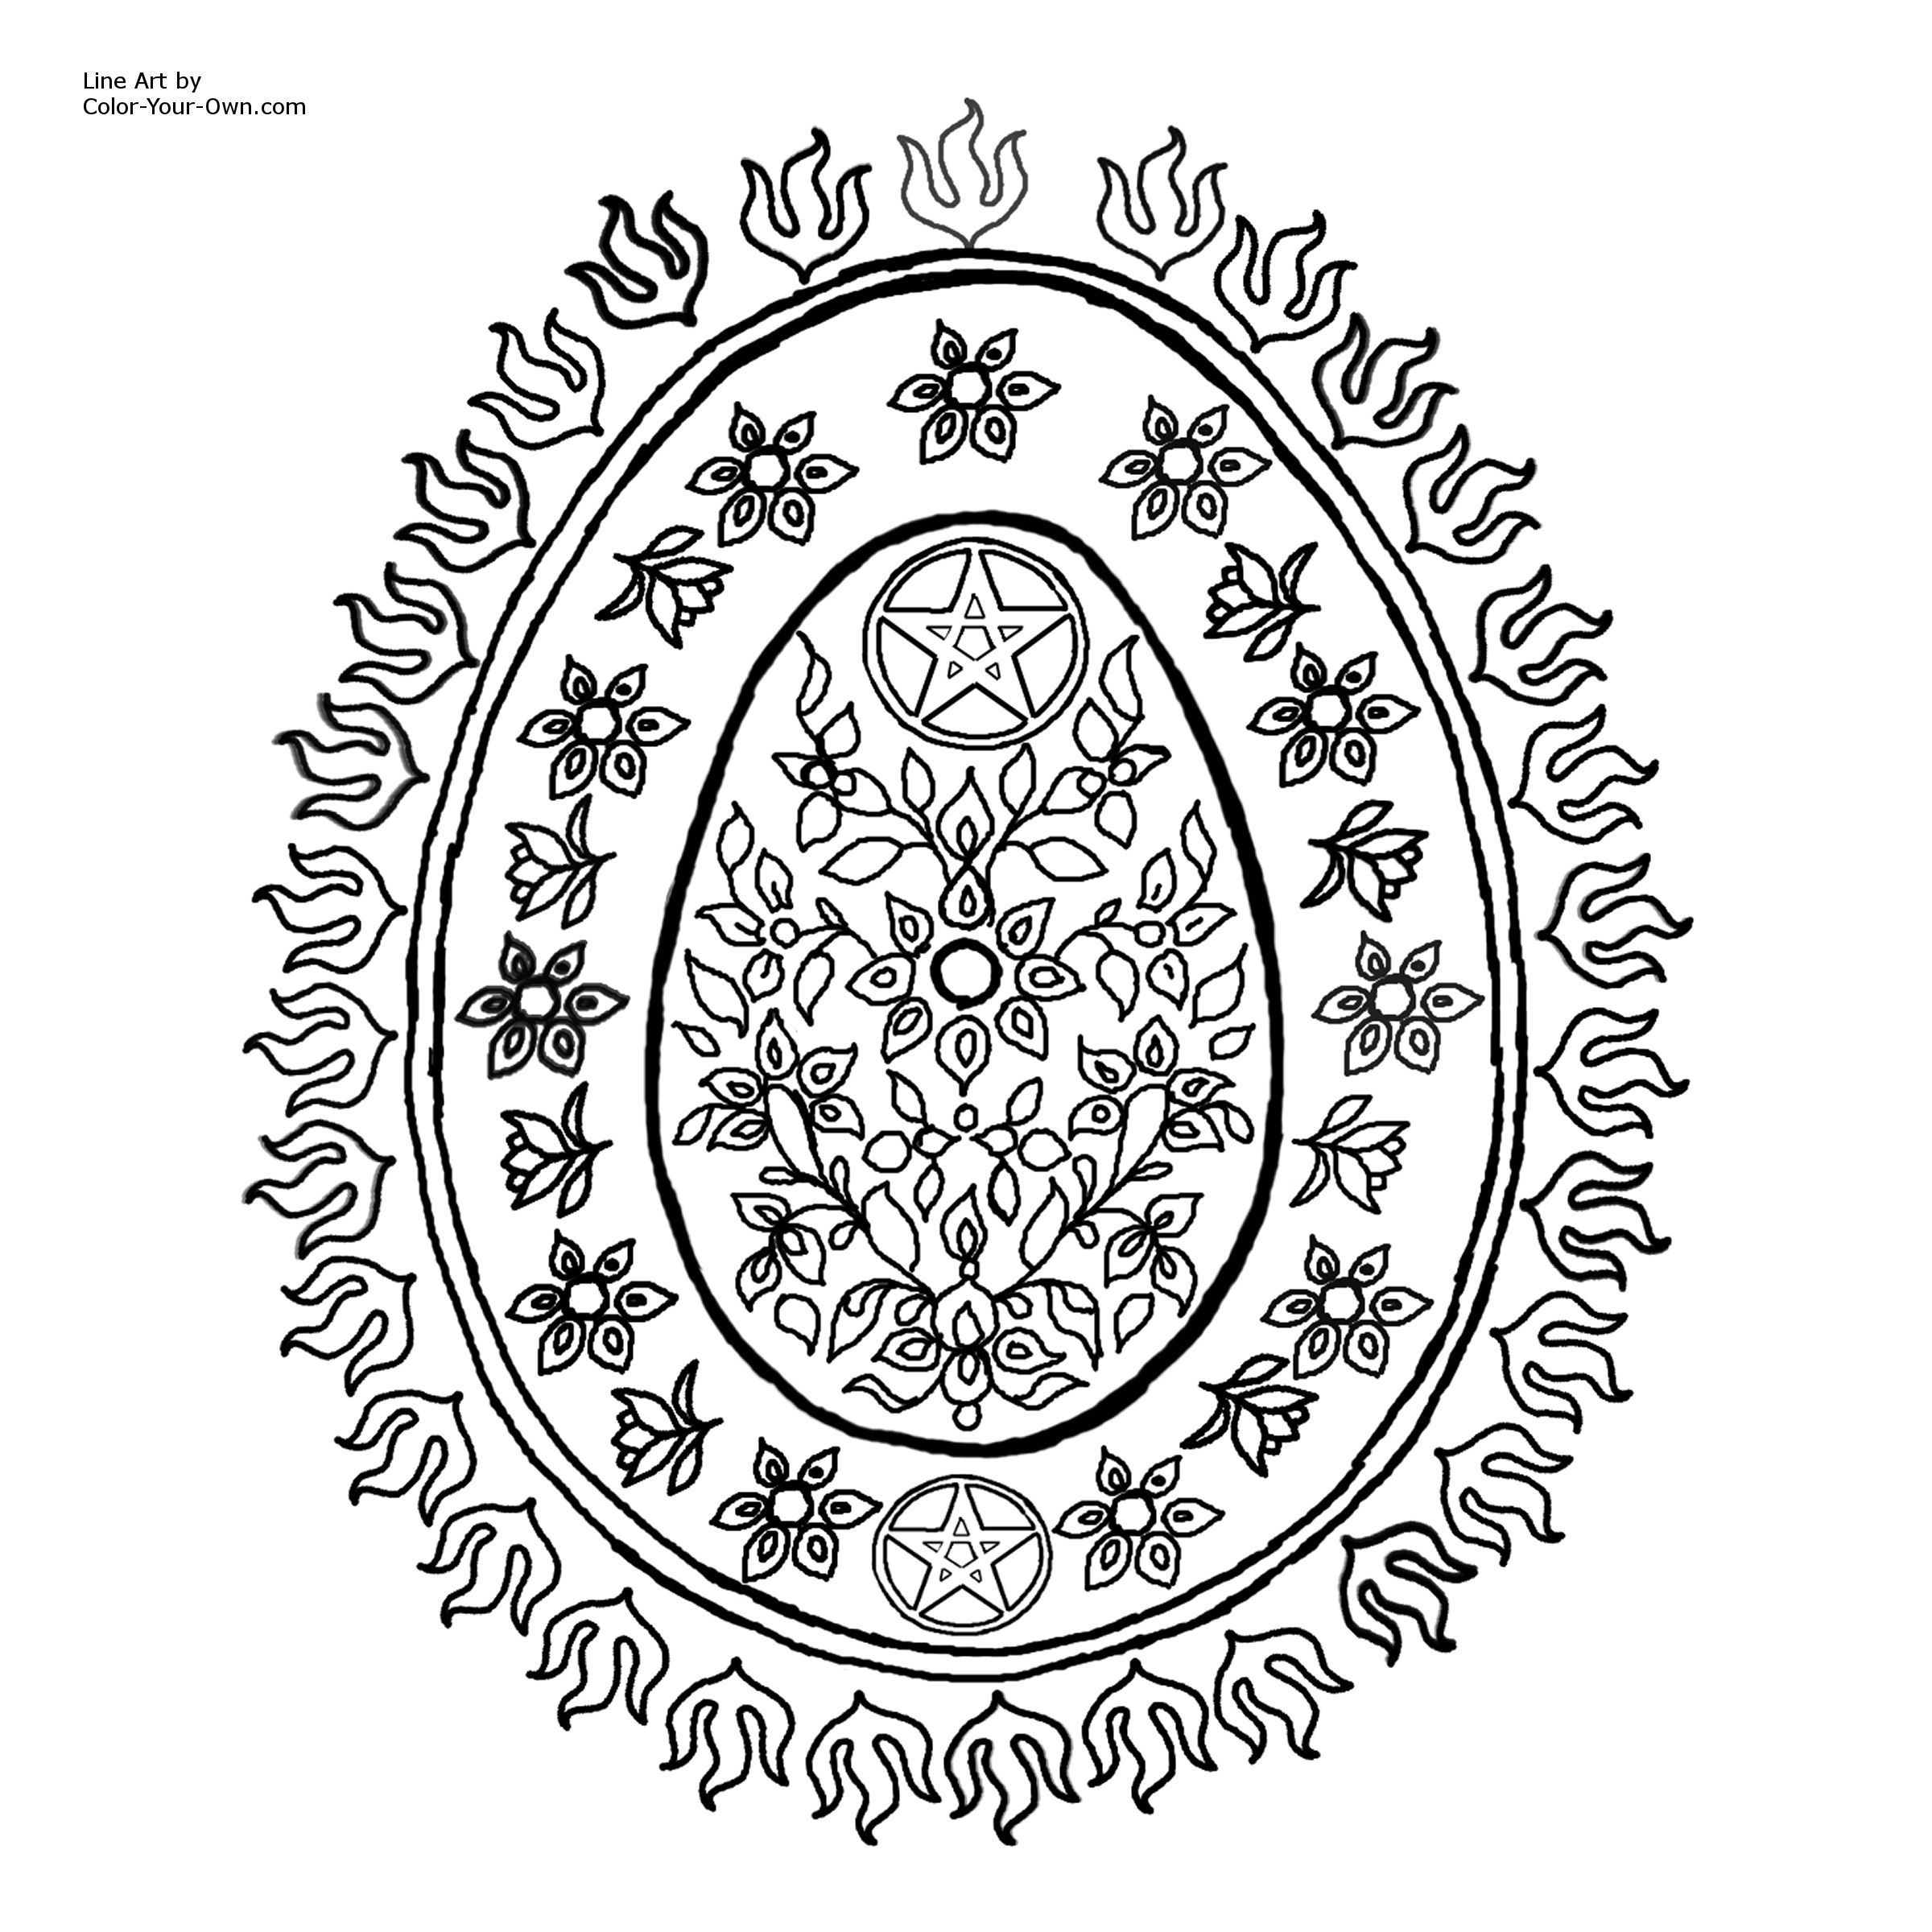 Kids coloring book pages free - Pattern Coloring Pages Easter Eggs Coloring Sheets Archives Kids Coloring Pages